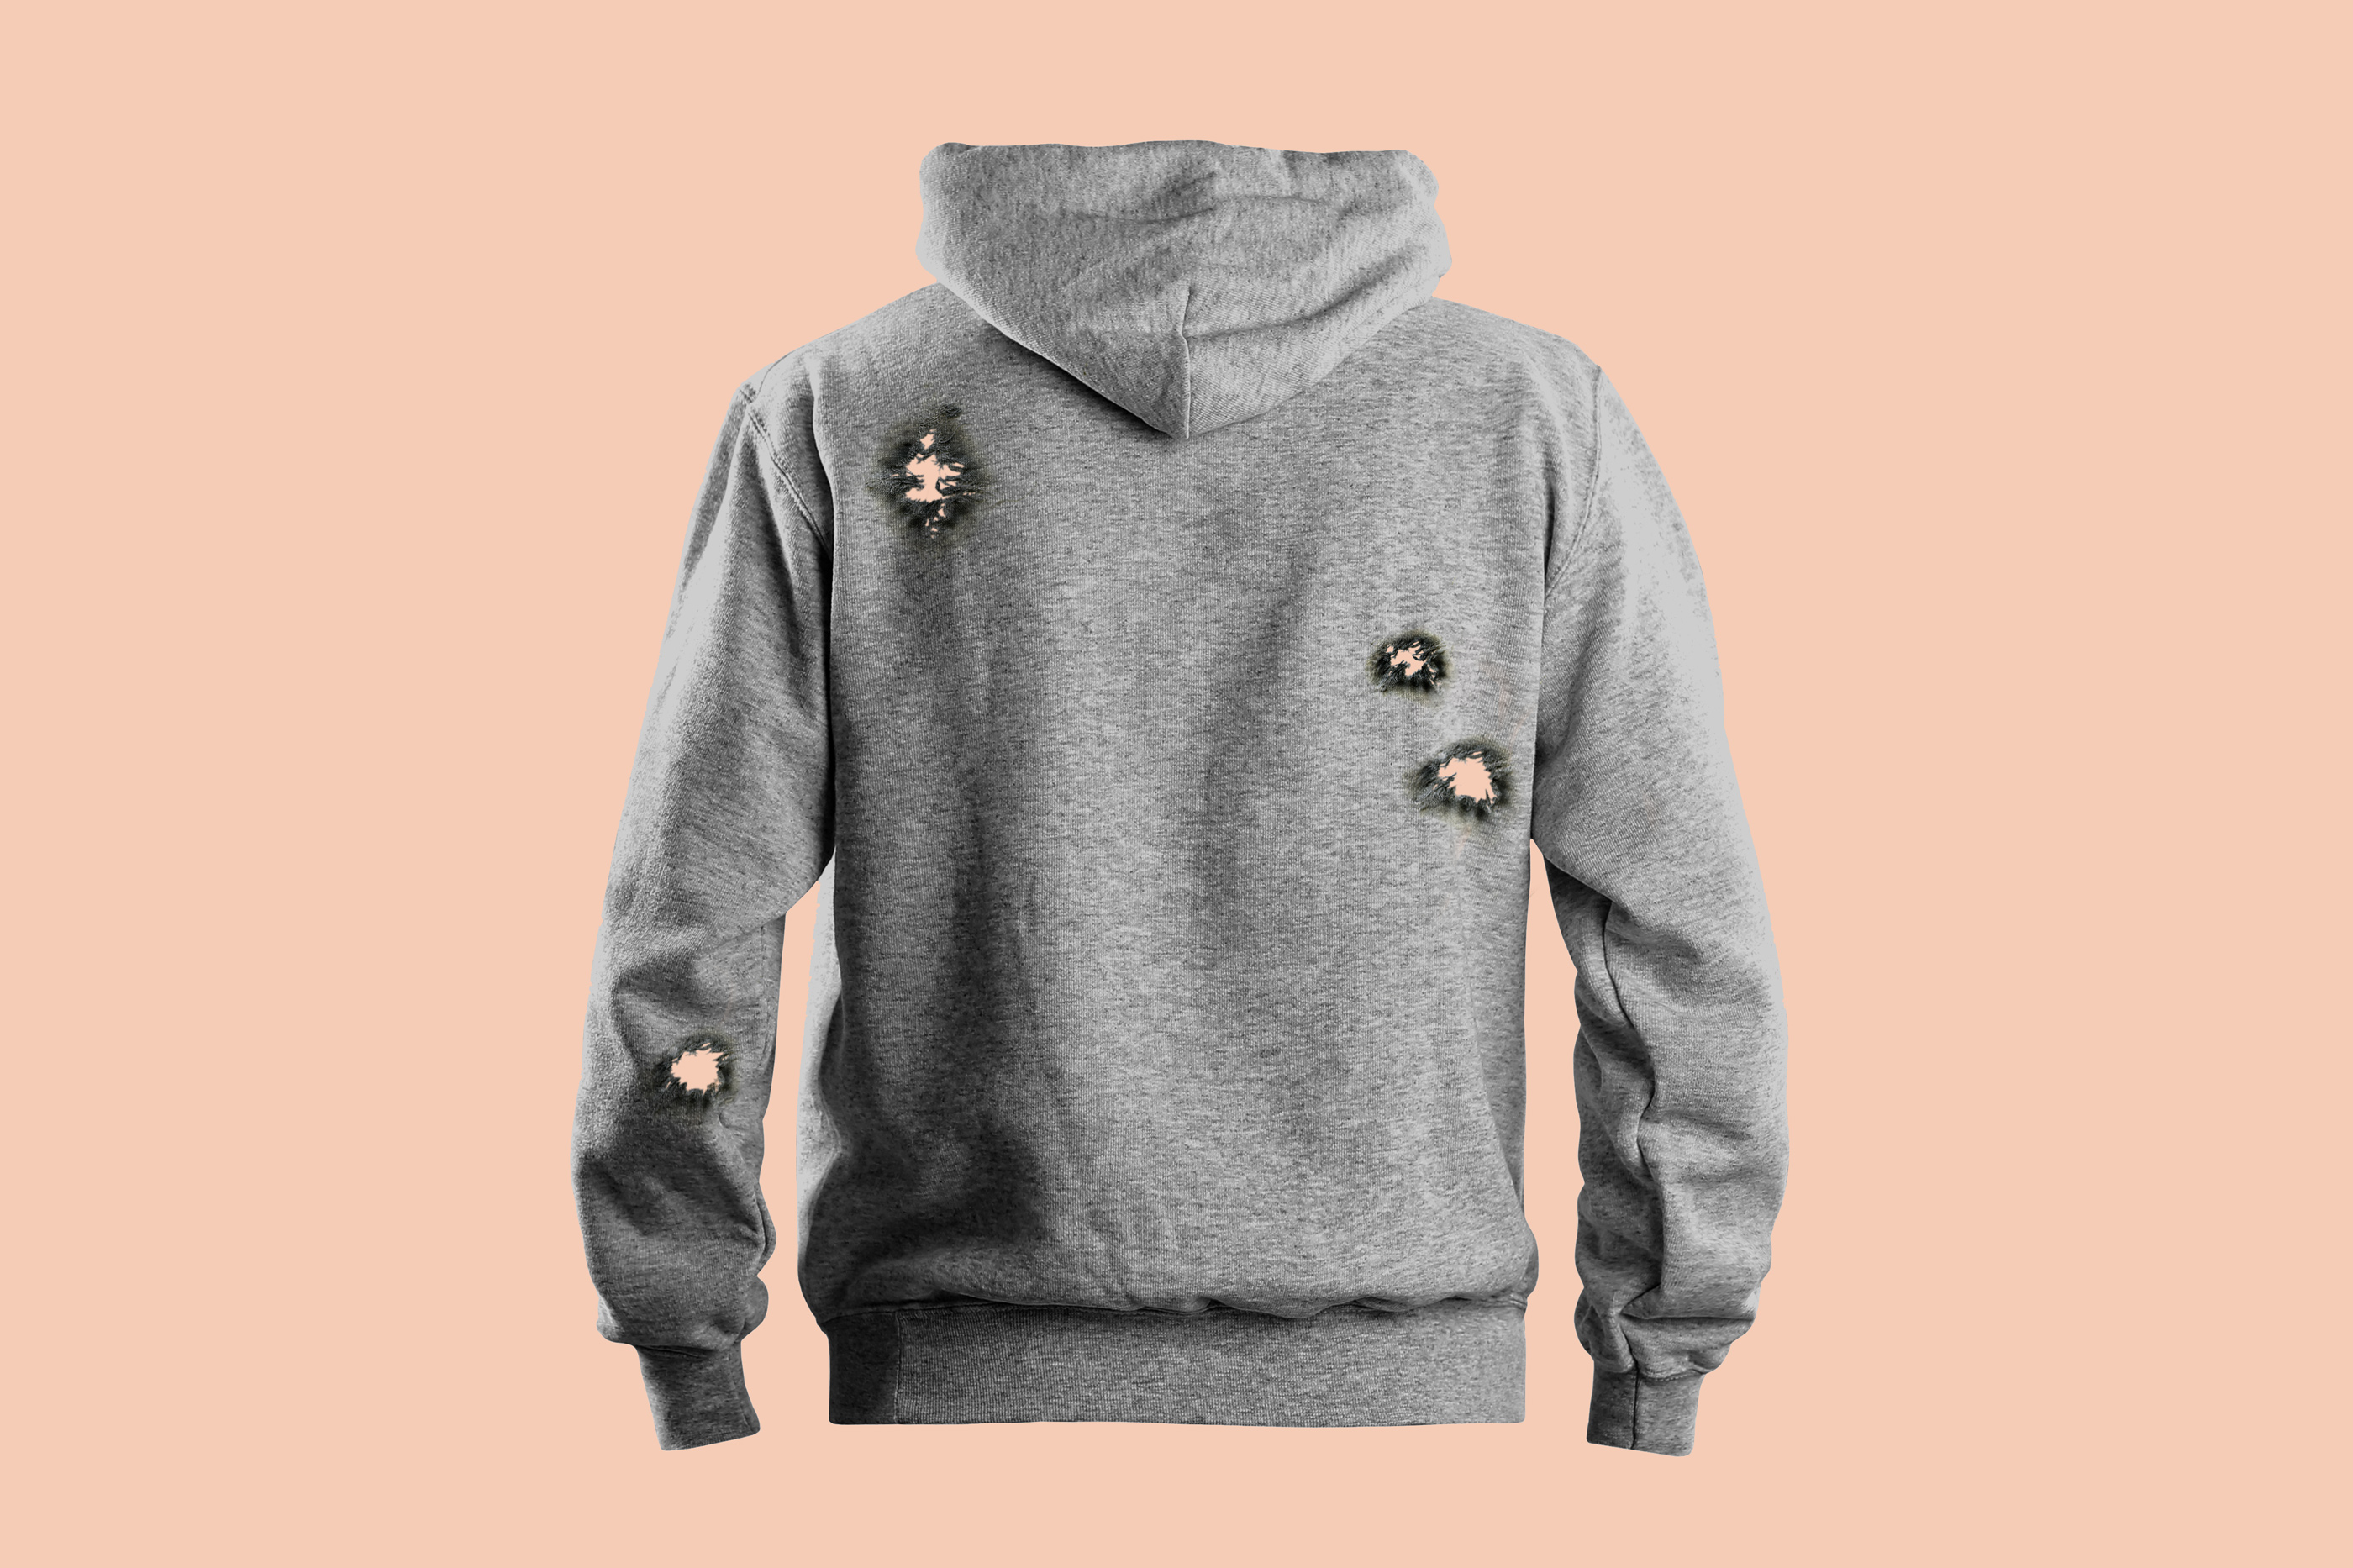 Fashion Brand Creates Bullet Hole-Ridden School Shooting Hoodies, Facing Outrage and Backlash